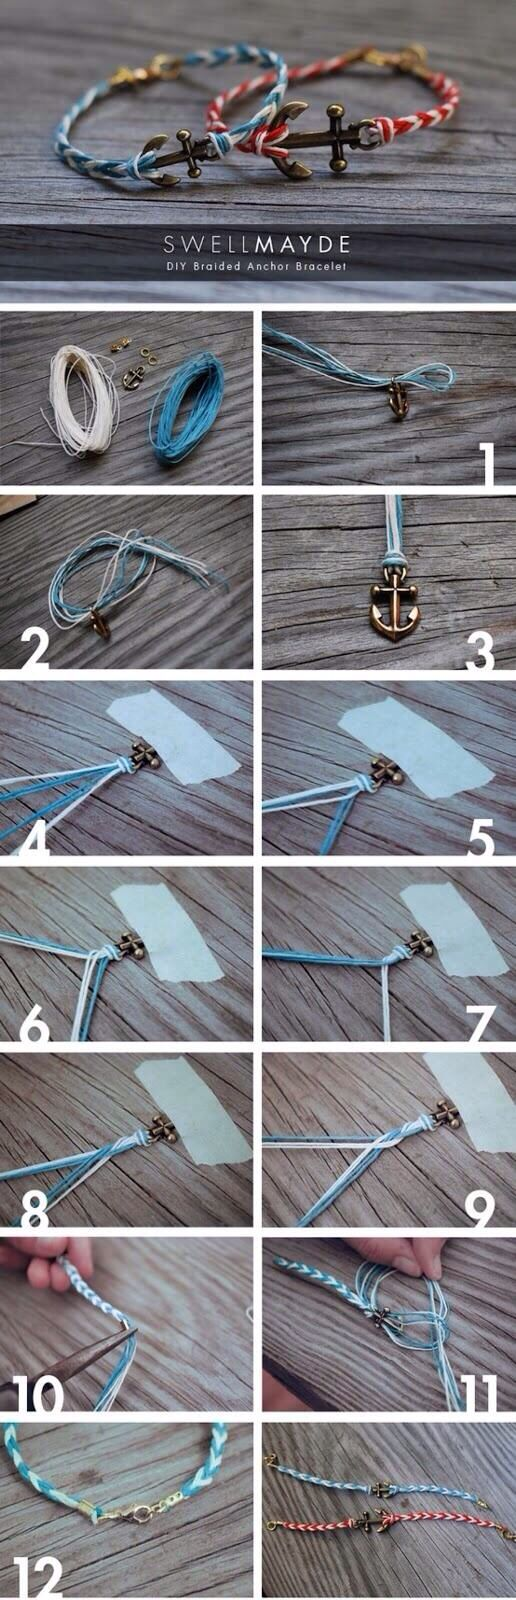 Anchor bracelet DIY